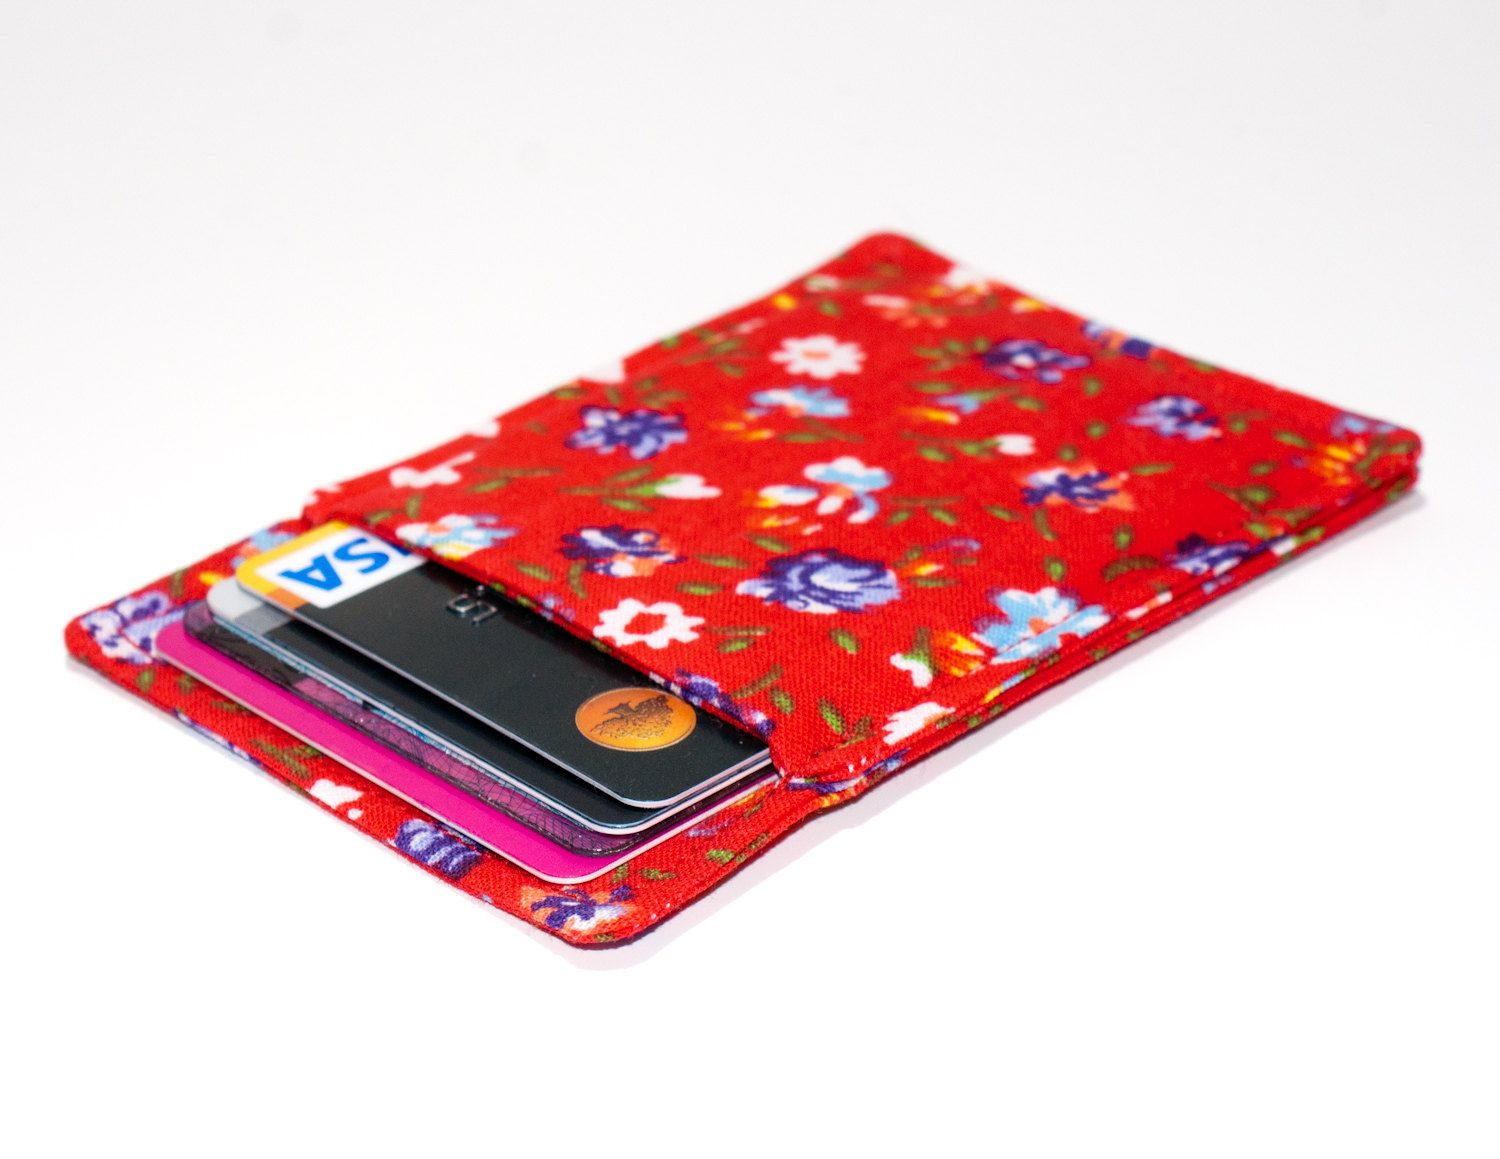 New to Chockrosa on Etsy: Slim card wallet - Red with flowers - Floral credit card wallet - Red credit card case - Business card holder - Red womens wallet - Modern